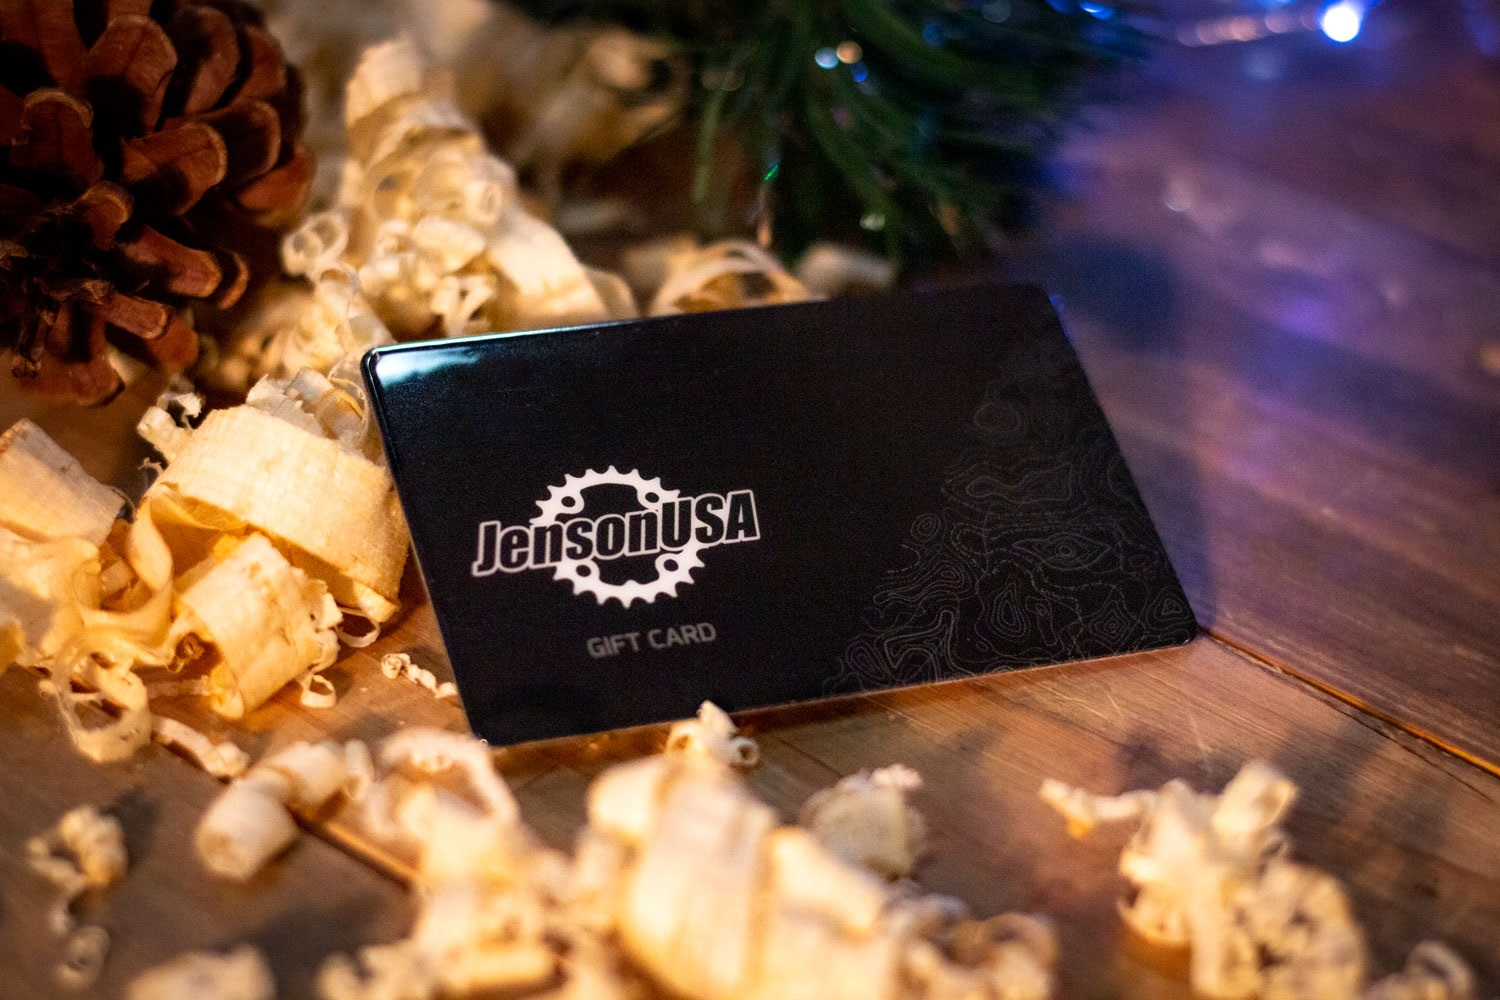 Jenson USA Gift Card